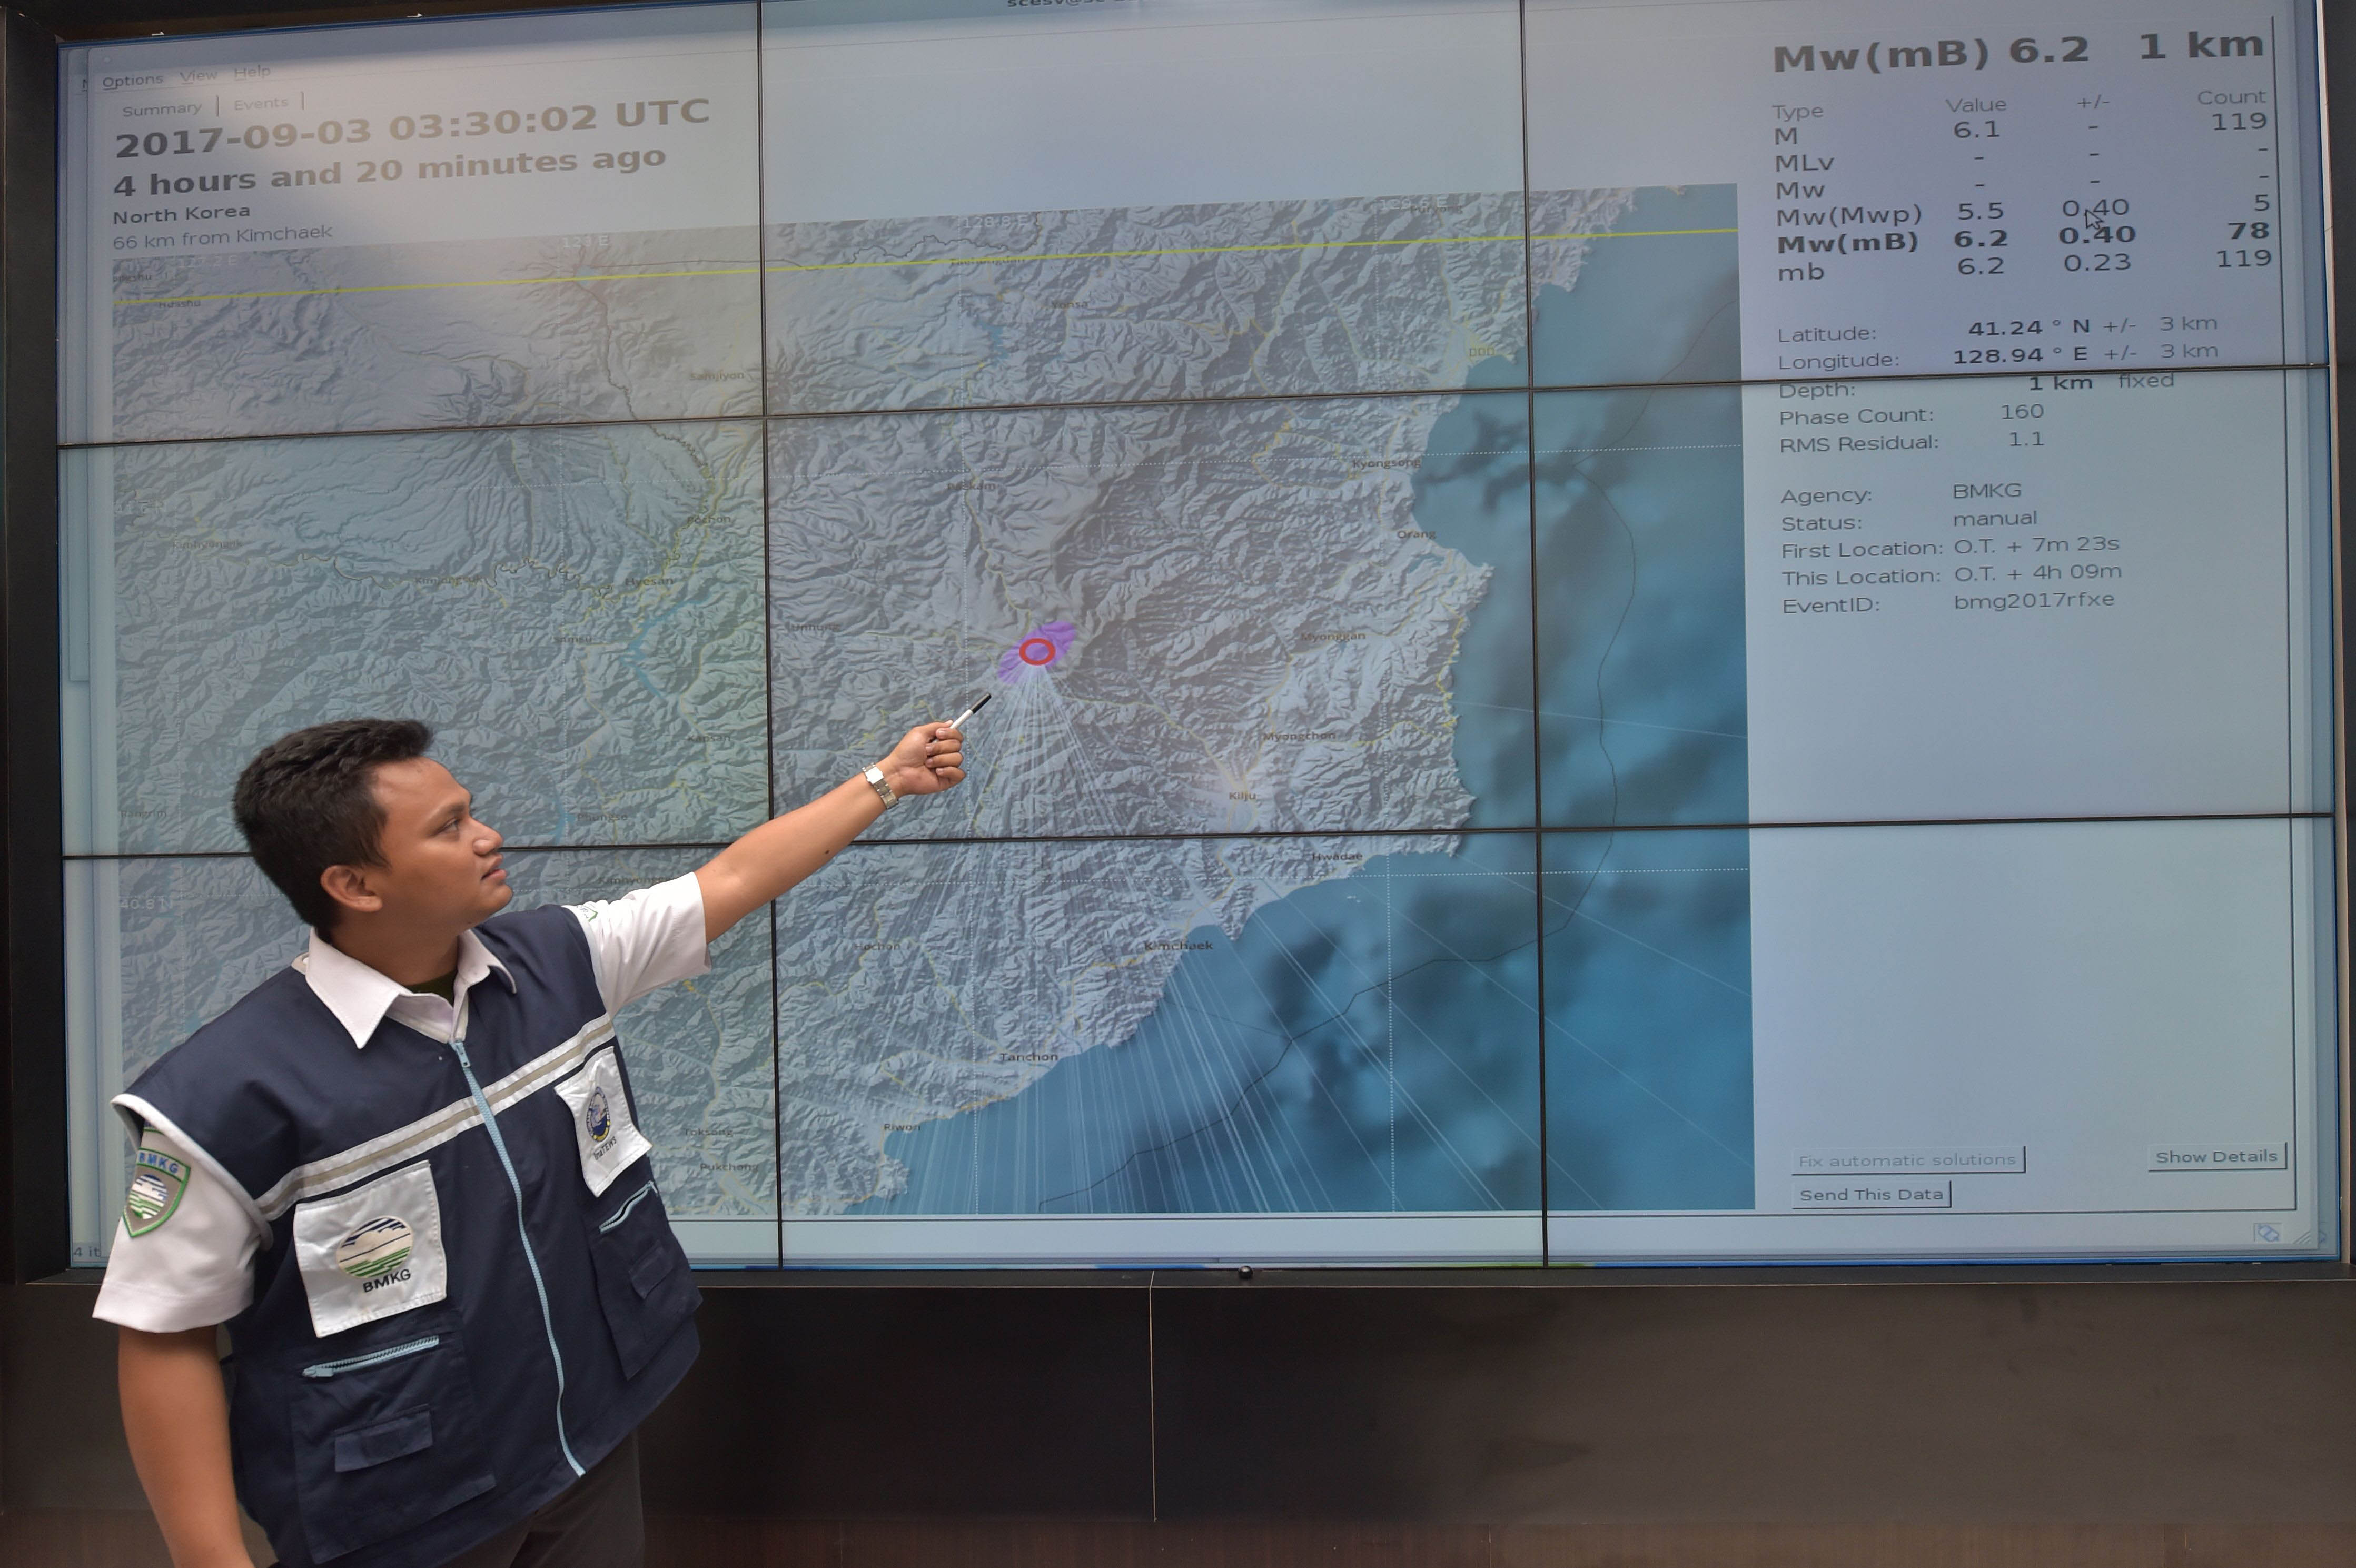 An Indonesian official at Indonesia's Meterological, Climatological and Geophysical Agency (BMKG) points to a map of North Korea showing where the agency recorded a 6.2 magnitude earthquake caused by a North Korean nuclear test on September 3, 2017. (Adek Berry/AFP/Getty Images)